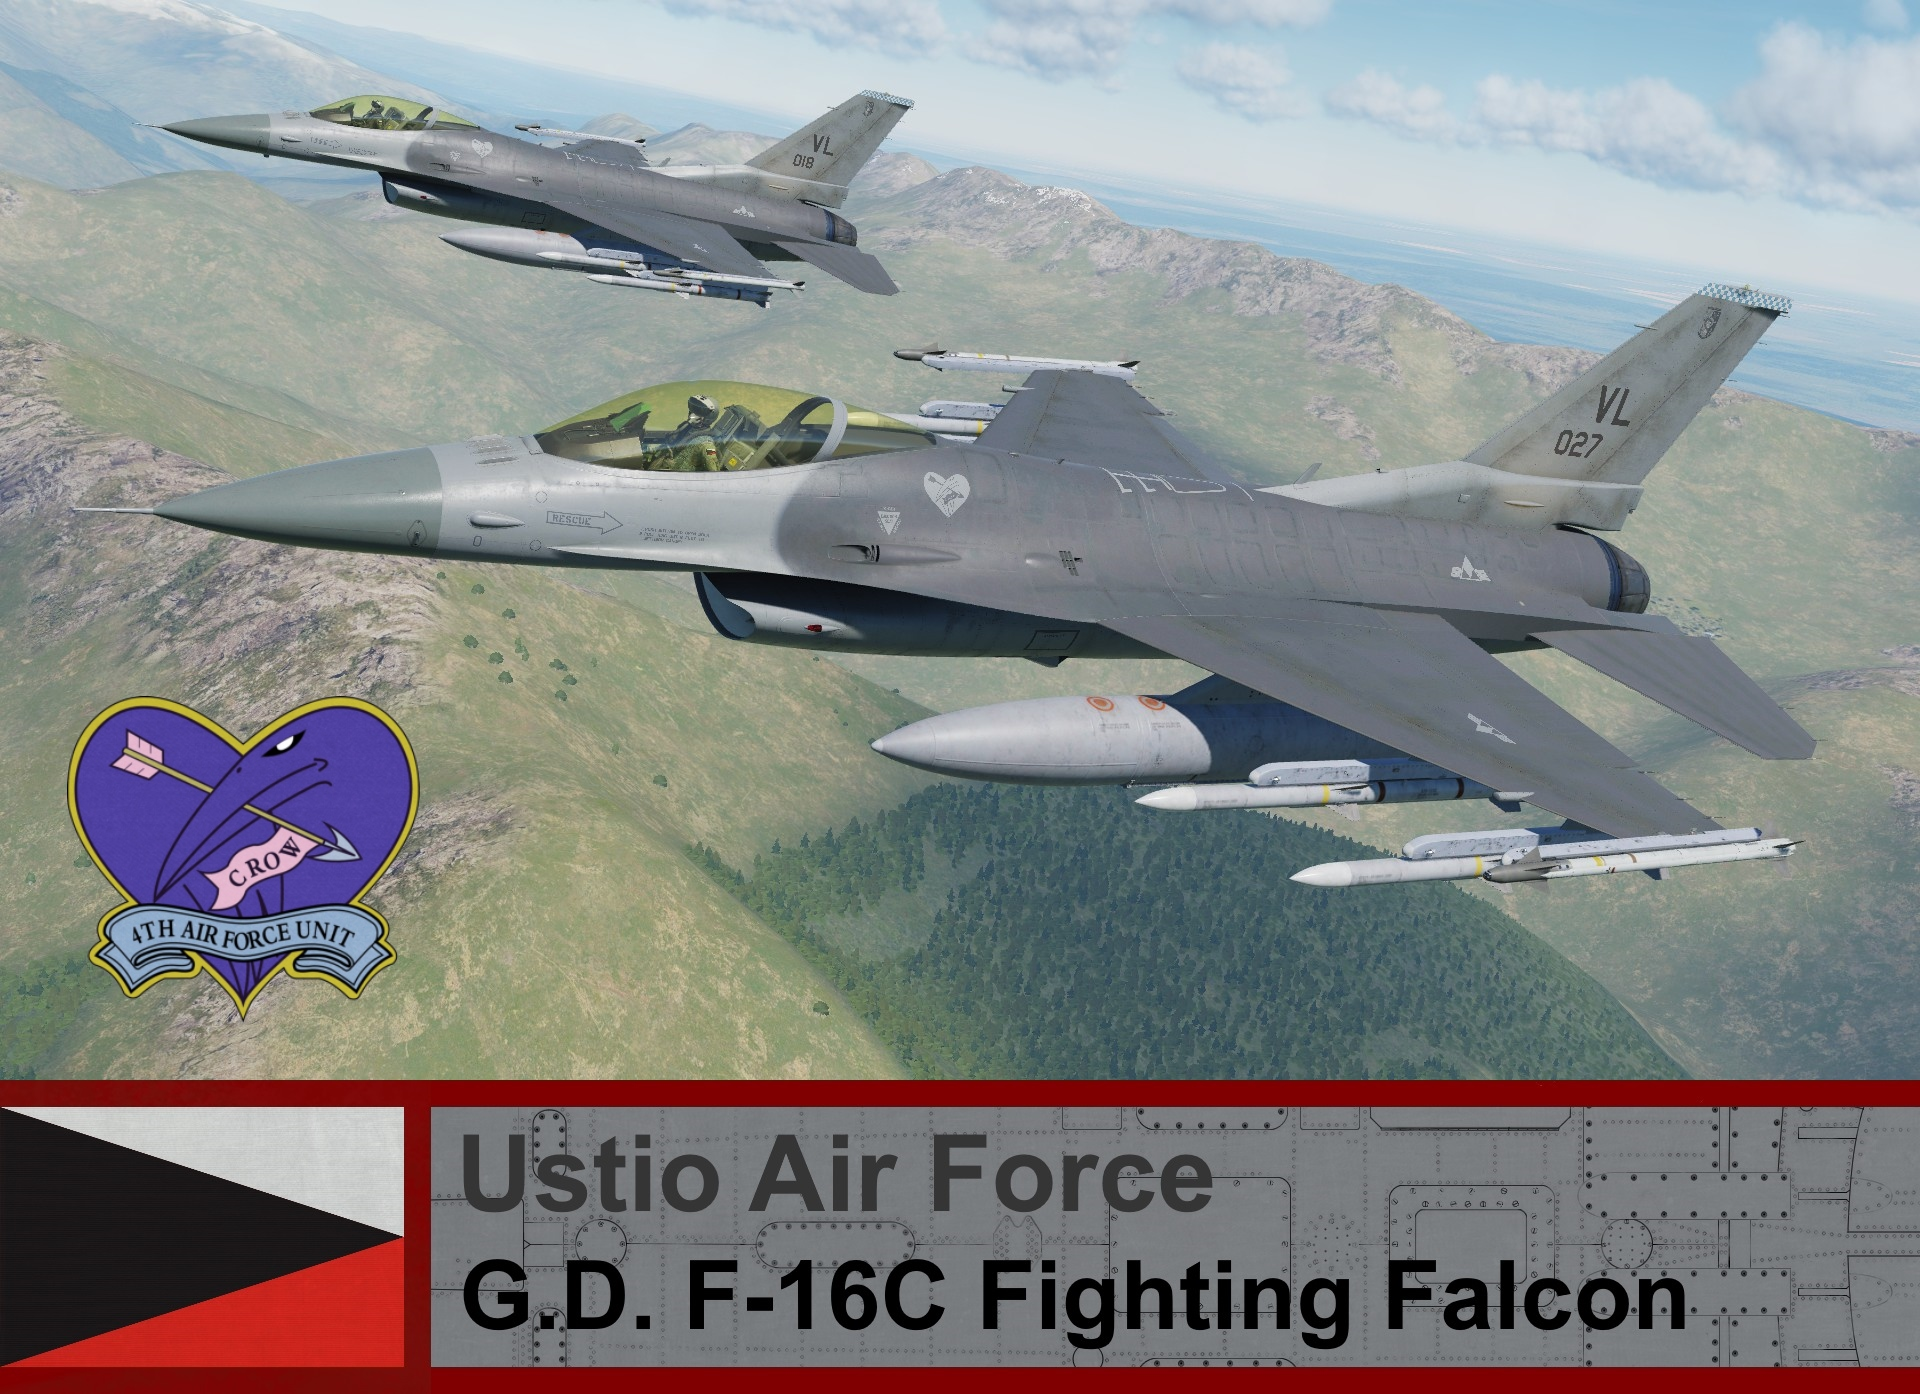 Ustio Air Force F-16C Block 50 - Ace Combat Zero, (04th AFU) Crow 1 & Crow 2 *UPDATED*